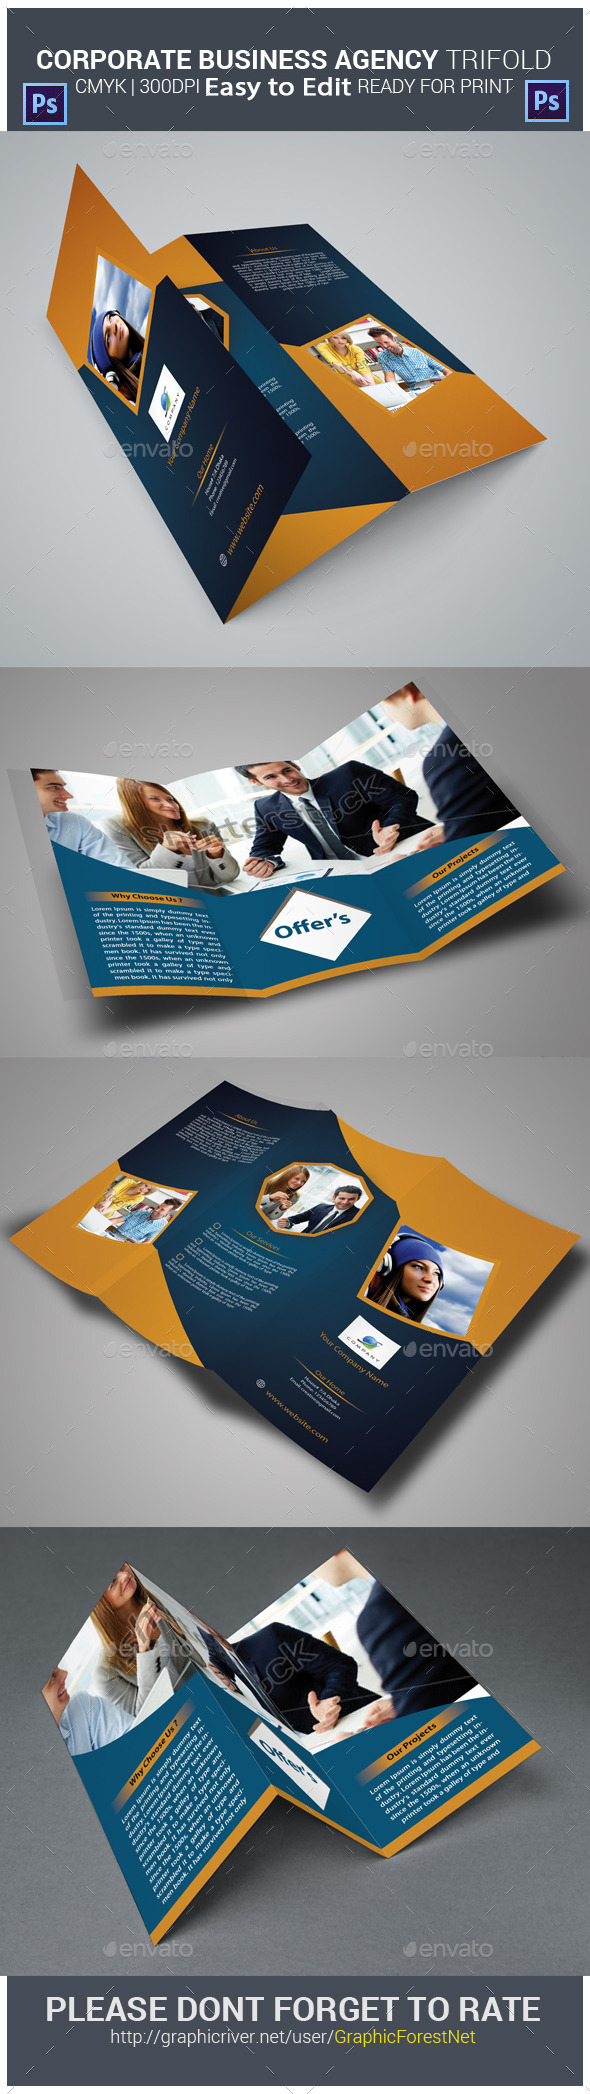 Corporate Business Agency Tri-fold Brochure - Brochures Print